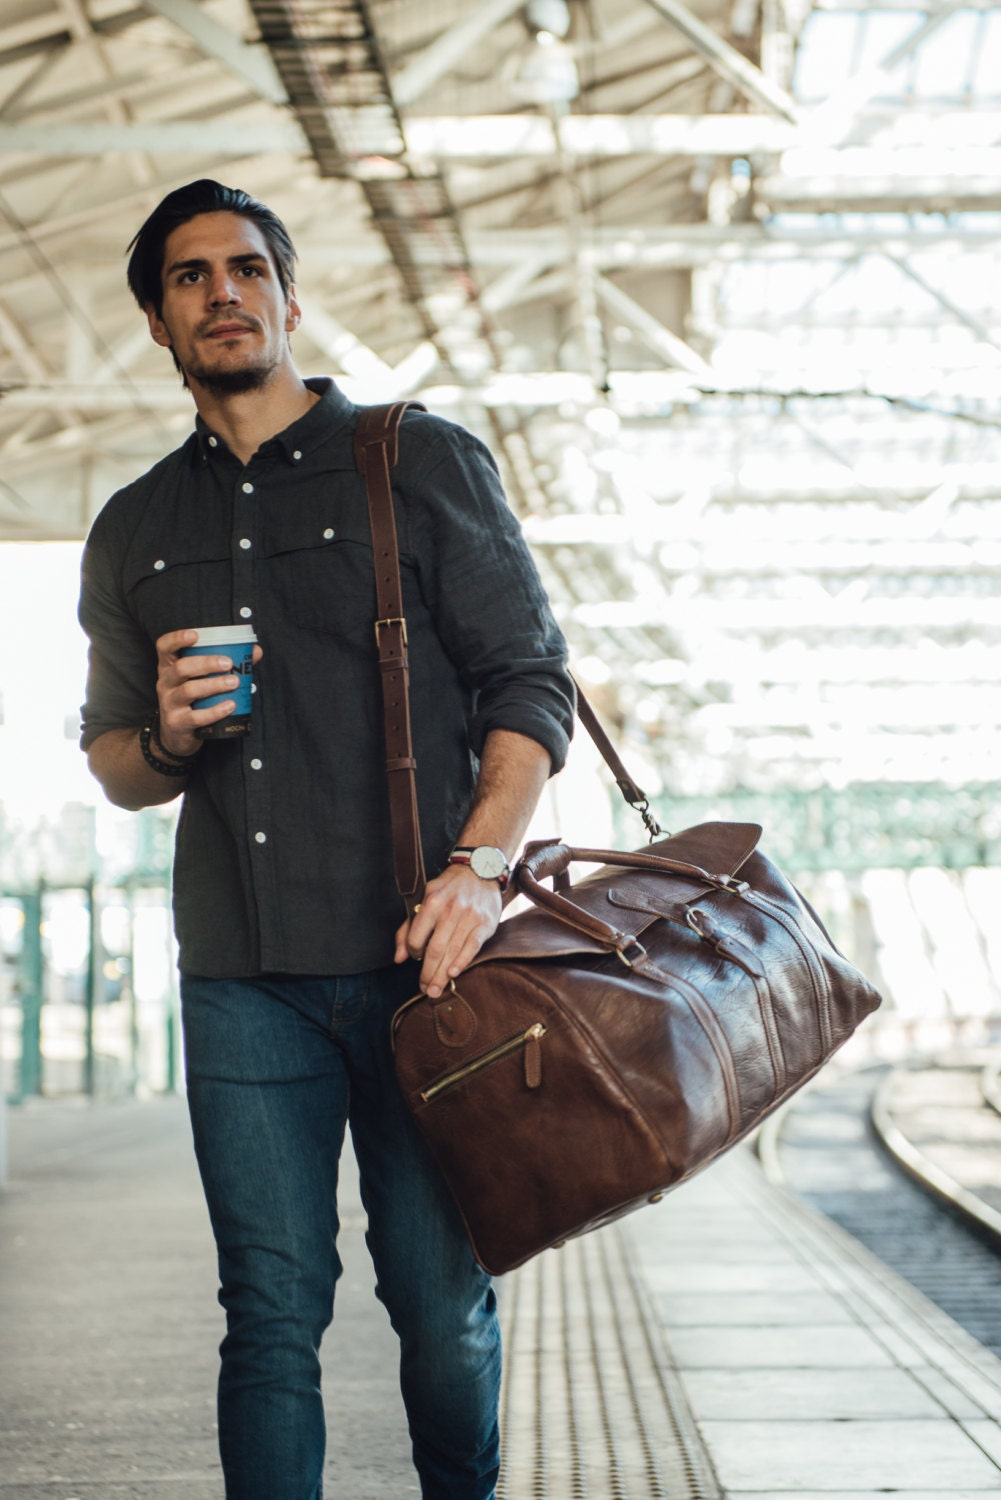 Large Mens Leather Duffle Bag Travel Holdall Luggage Carry All Holdall Leather Luggage Carry on Baggage Vegetable Tanned Suitcase